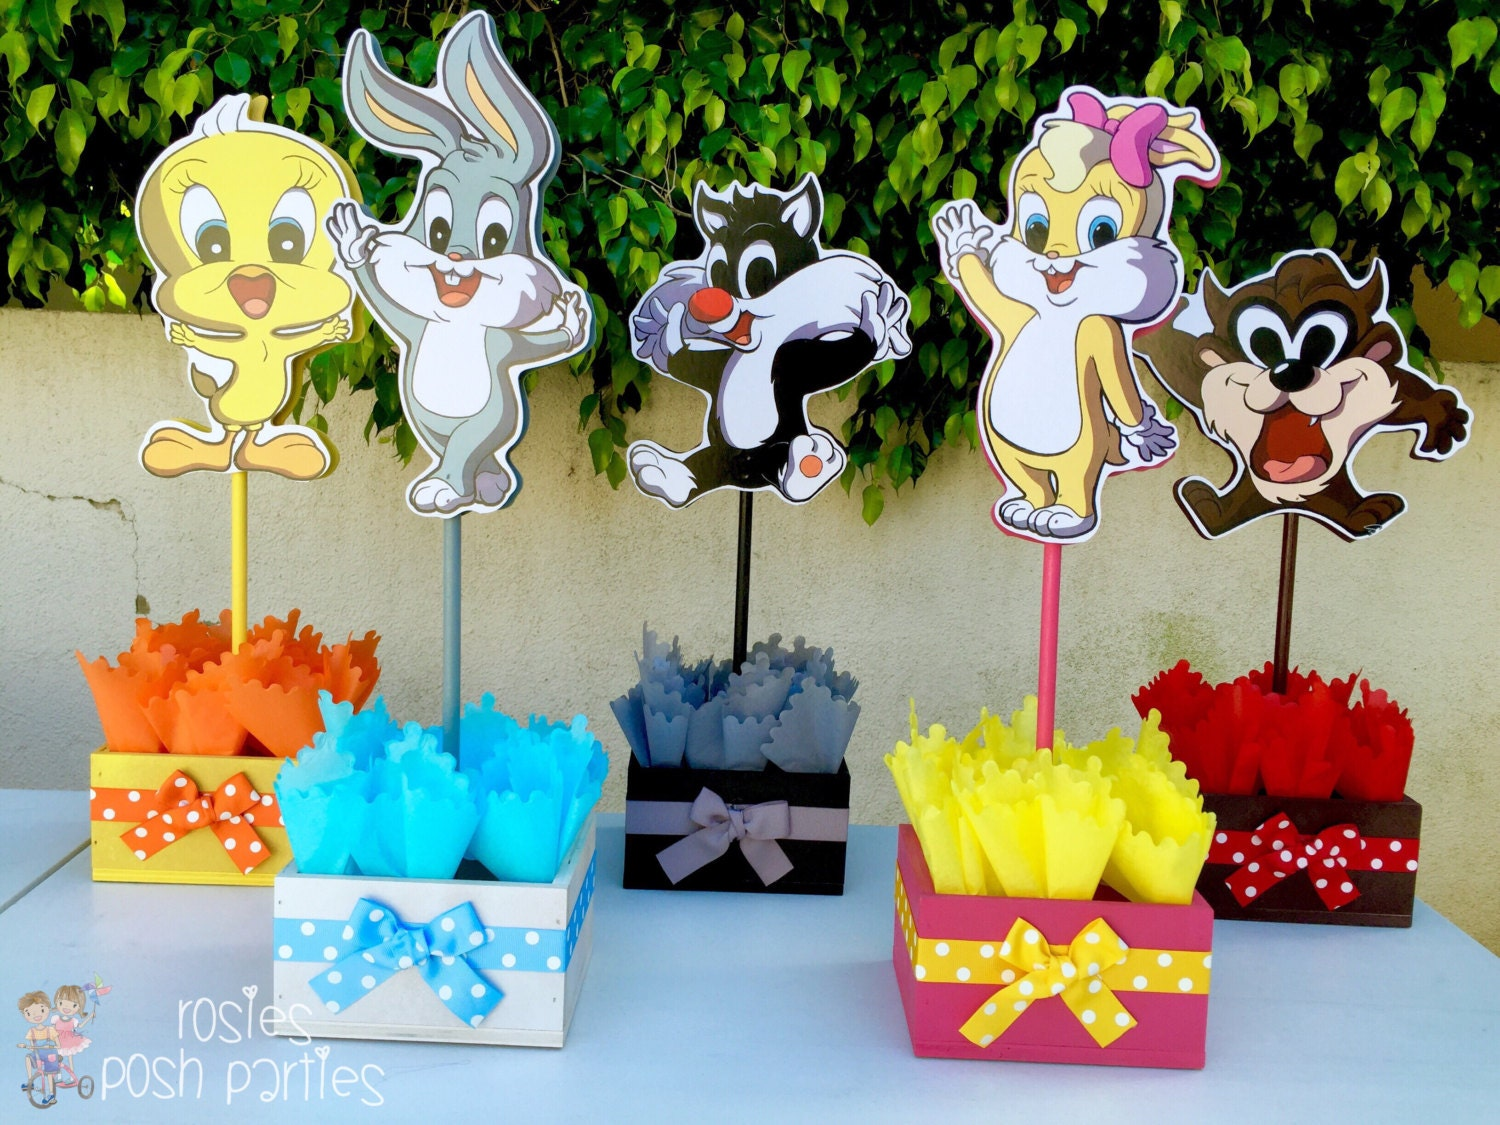 Baby looney tunes baby shower decorations sorepointrecords for Baby looney tune decoration